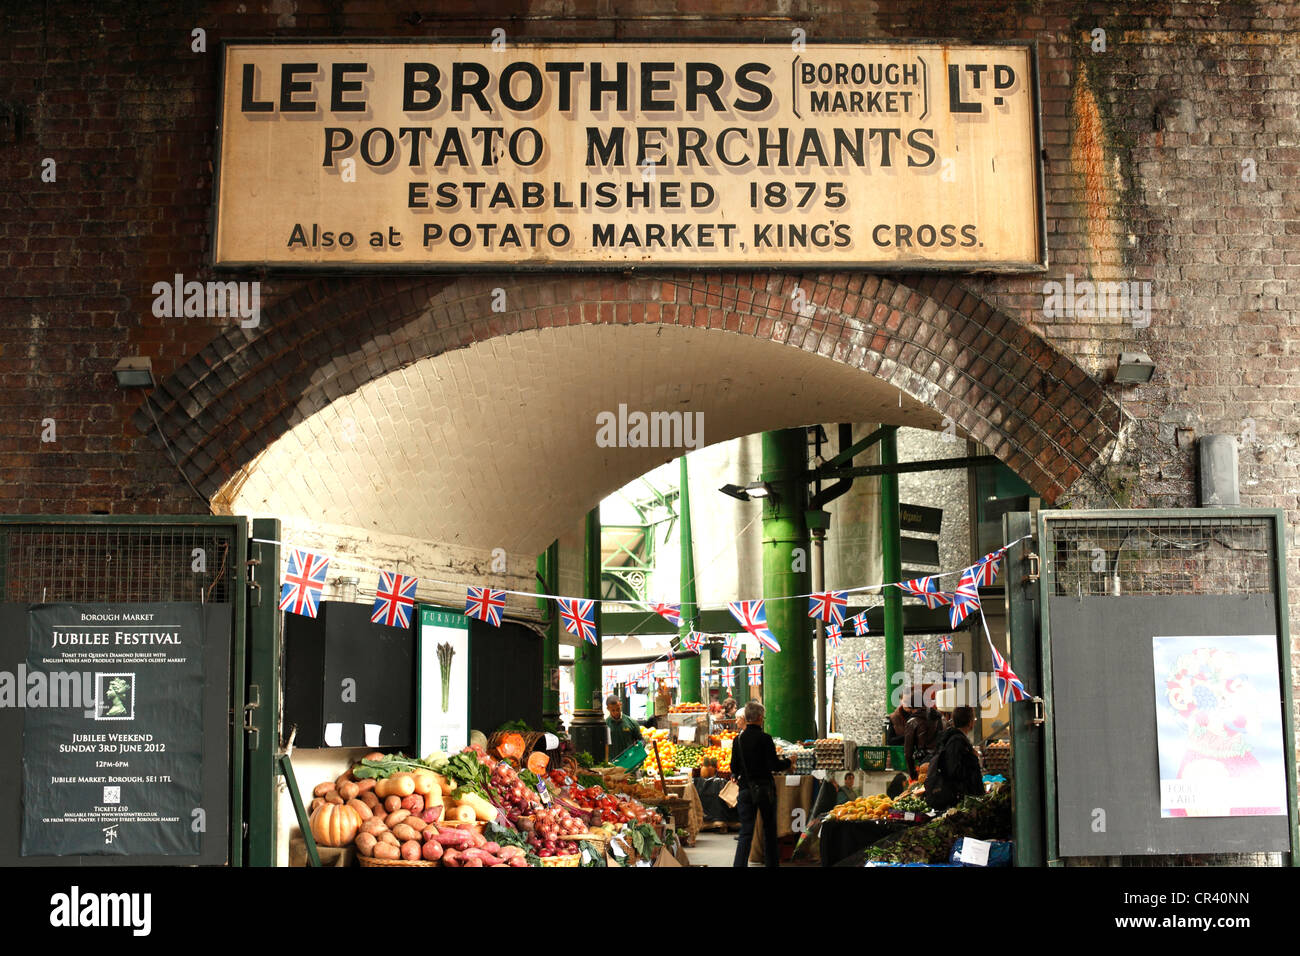 Lee Brothers Potato Merchants an old establish business at Borough Market, Southwark, London. - Stock Image